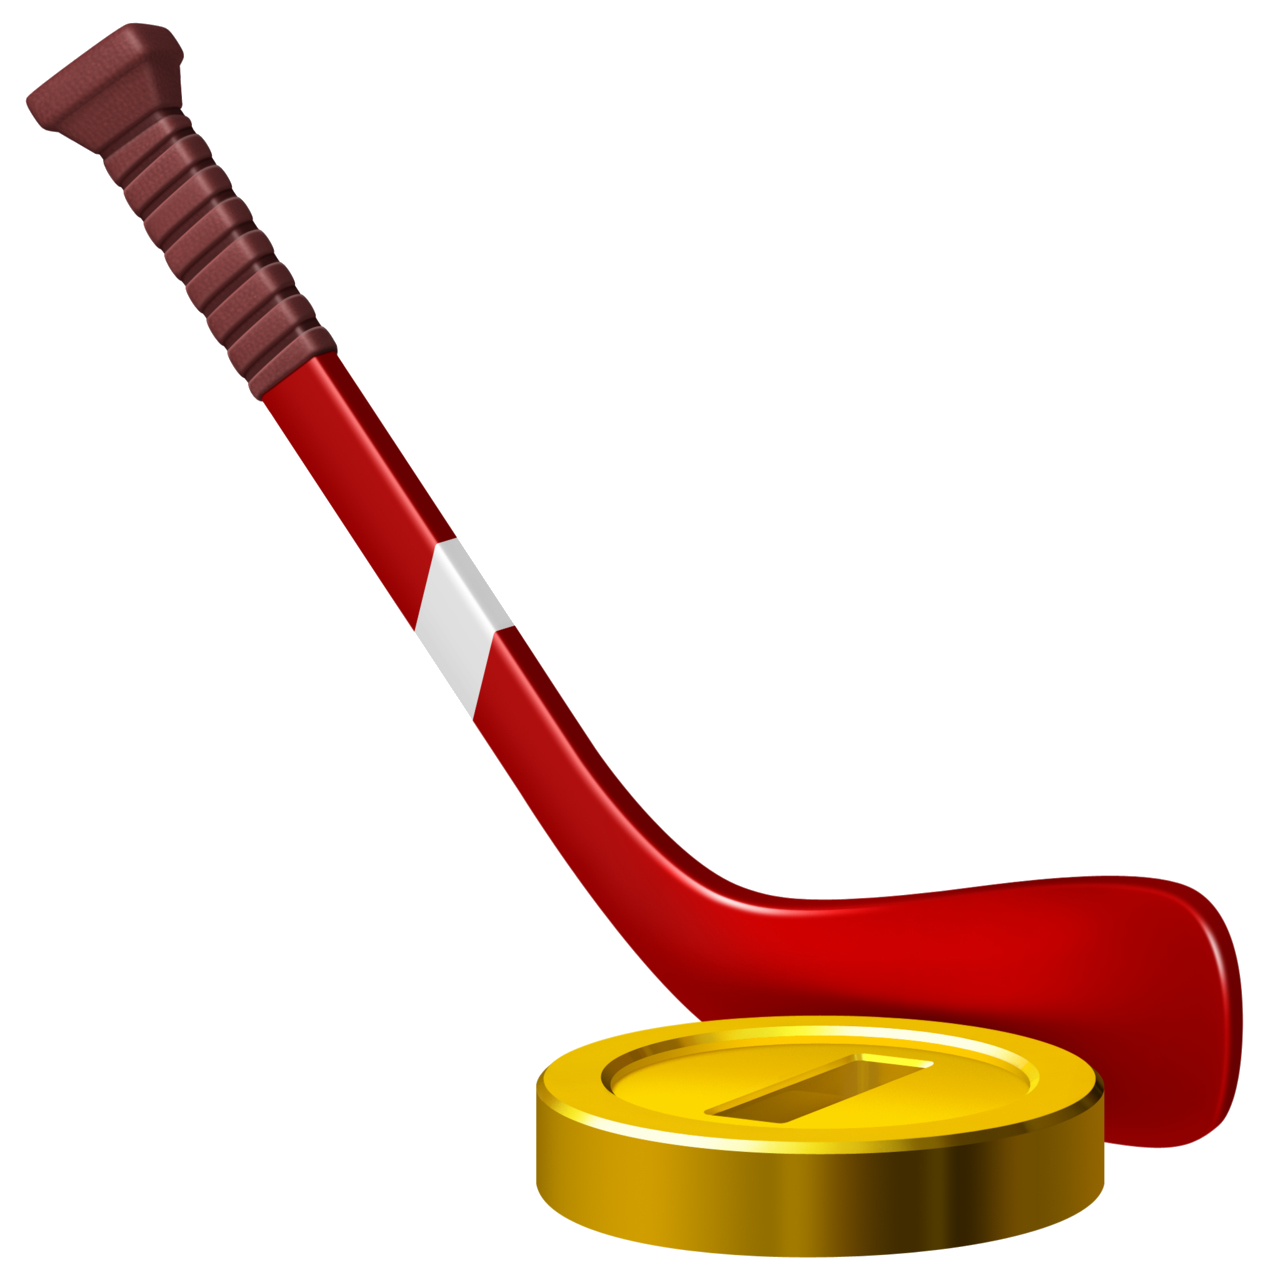 Hockey stick characters giant. Dodgeball clipart sport arena